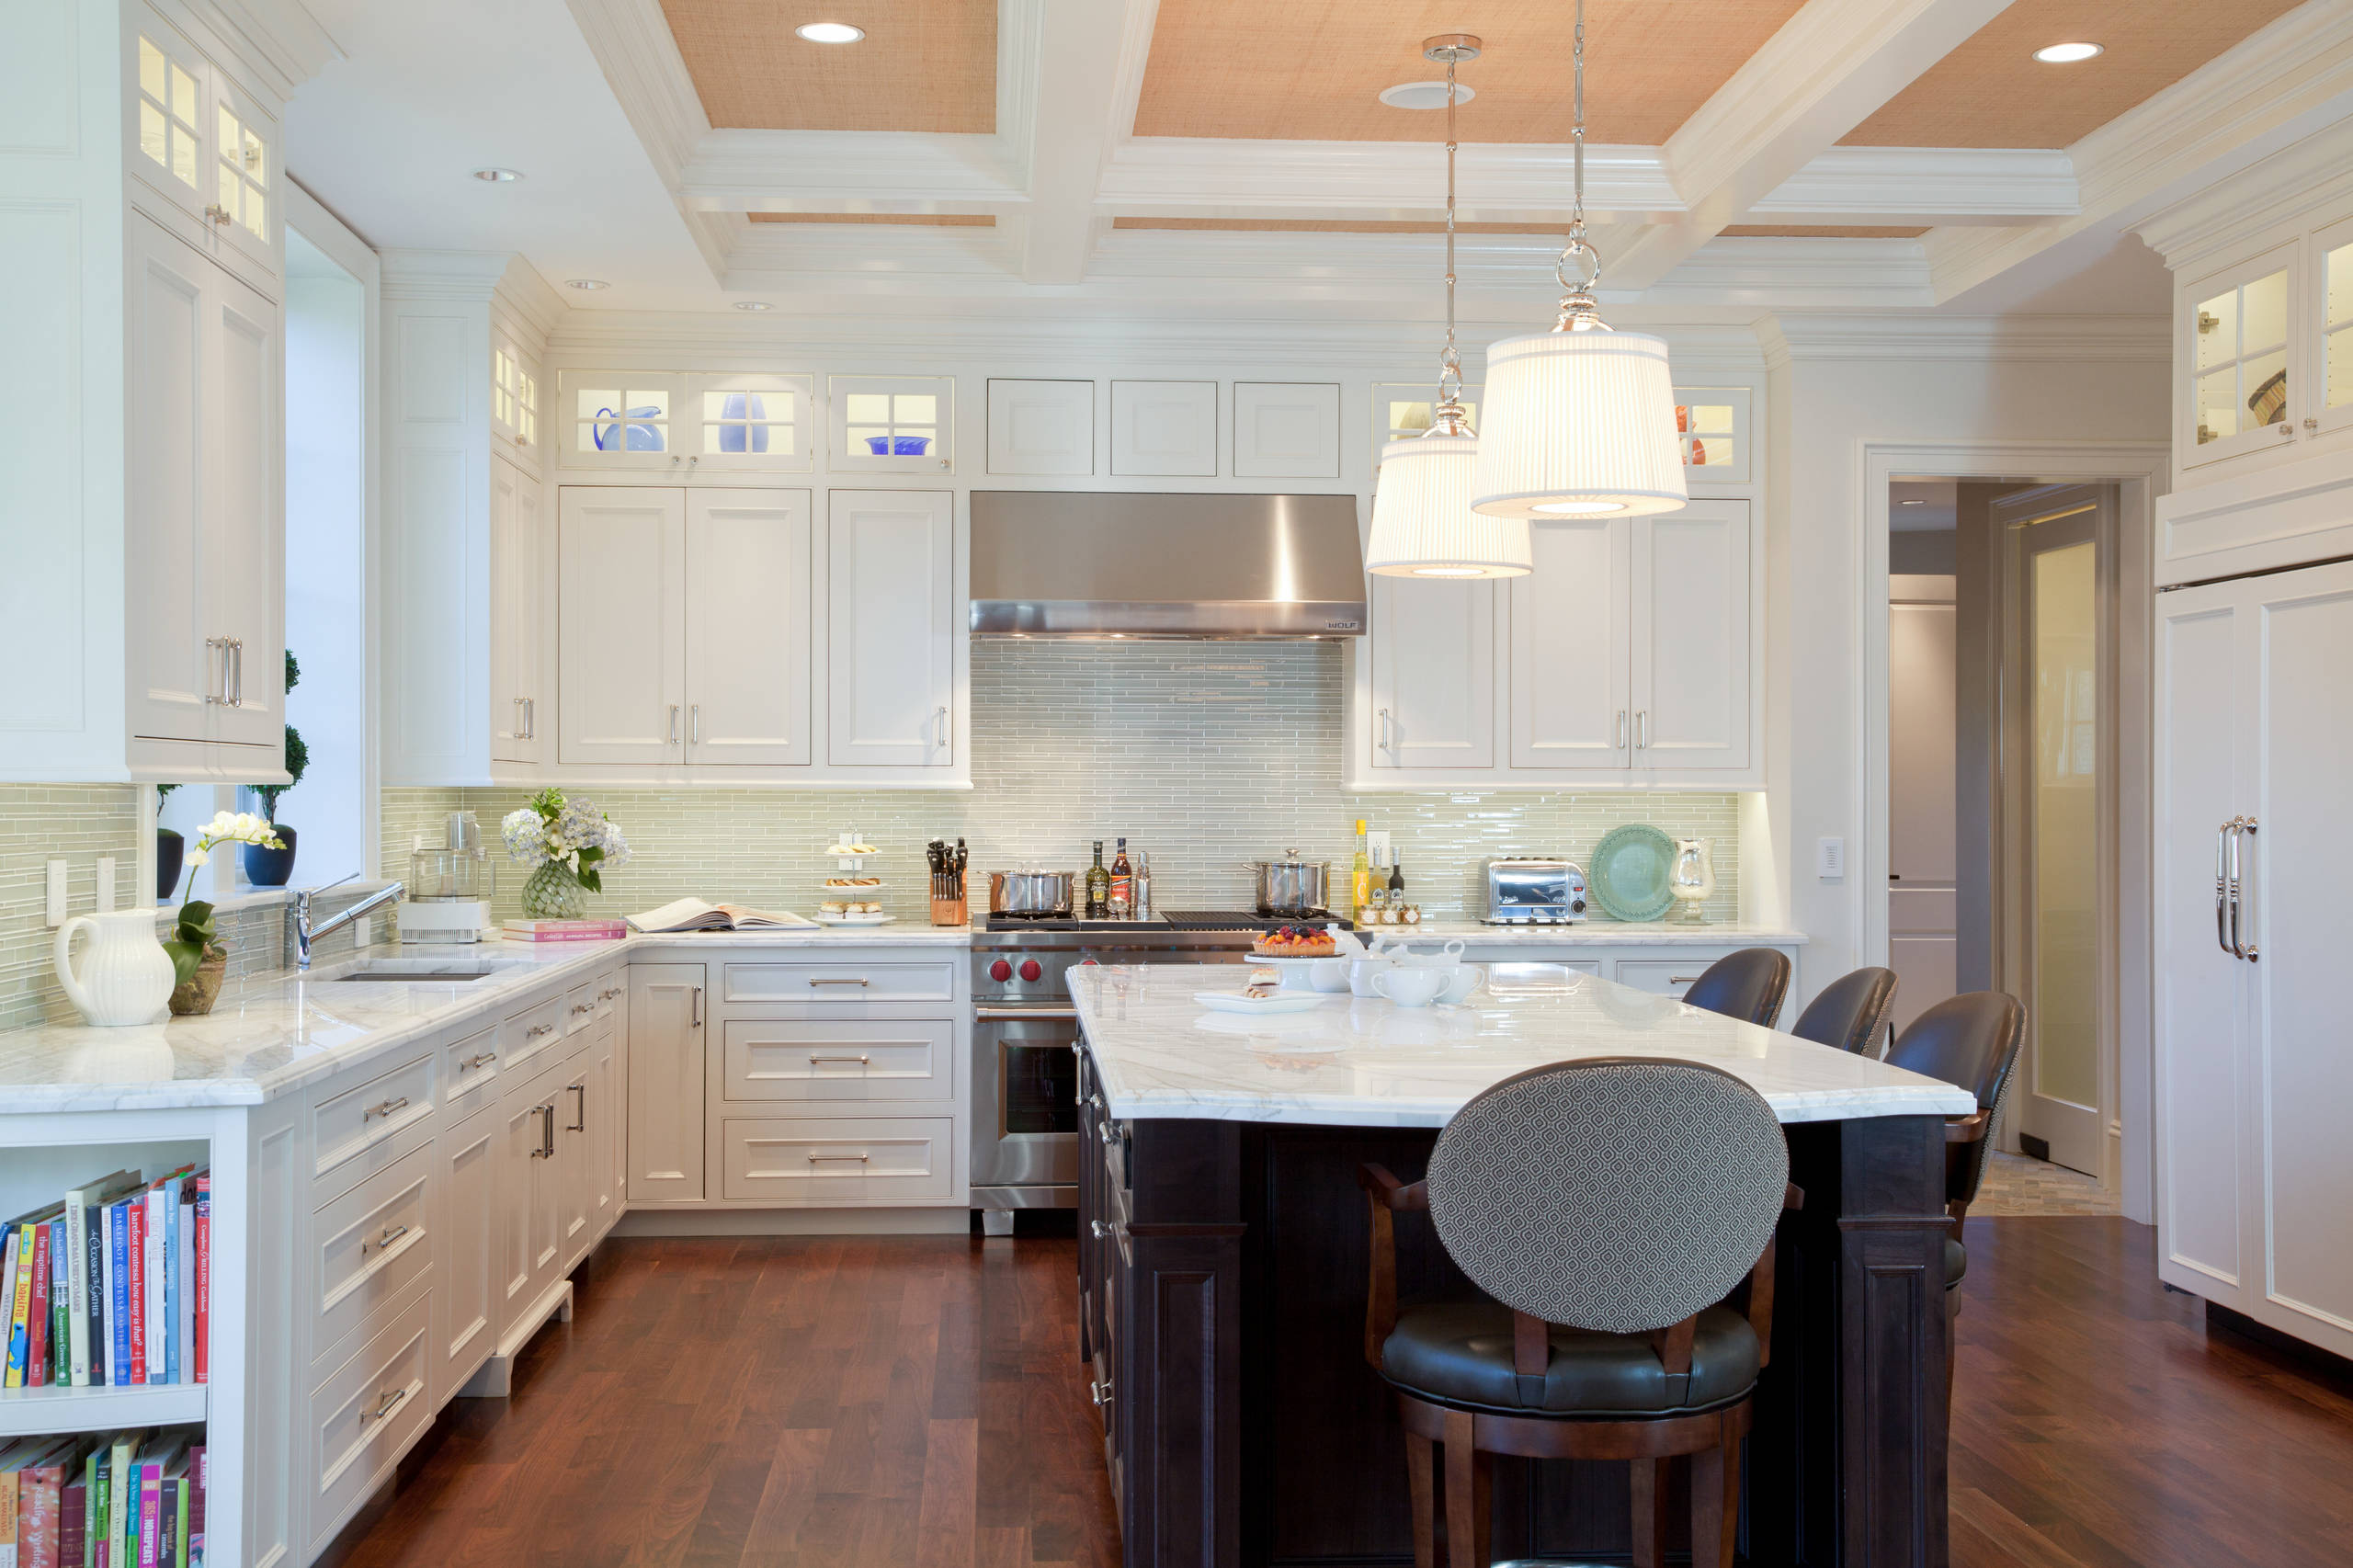 75 Beautiful Purple Kitchen With Marble Countertops Pictures Ideas December 2020 Houzz